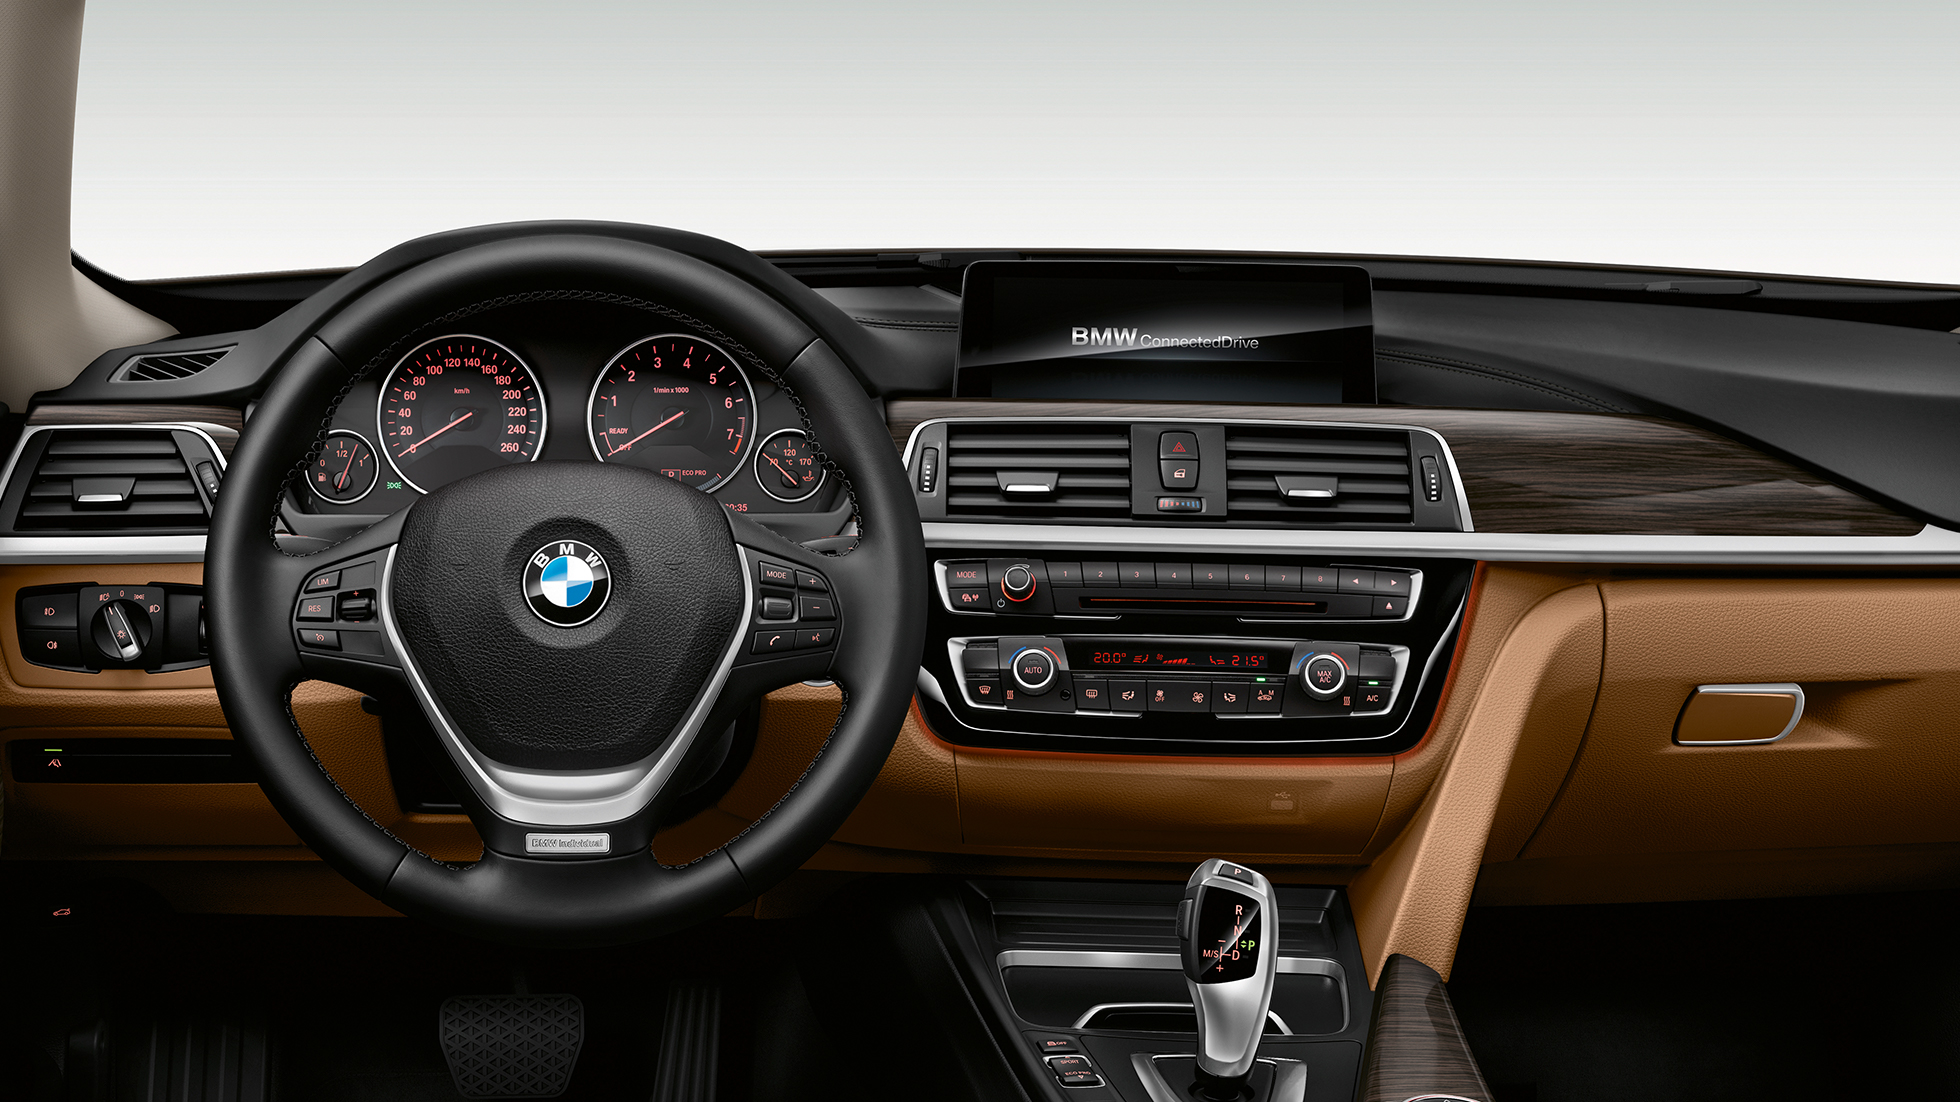 Habitaclul BMW Seria 3 Gran Turismo, Model Luxury Line